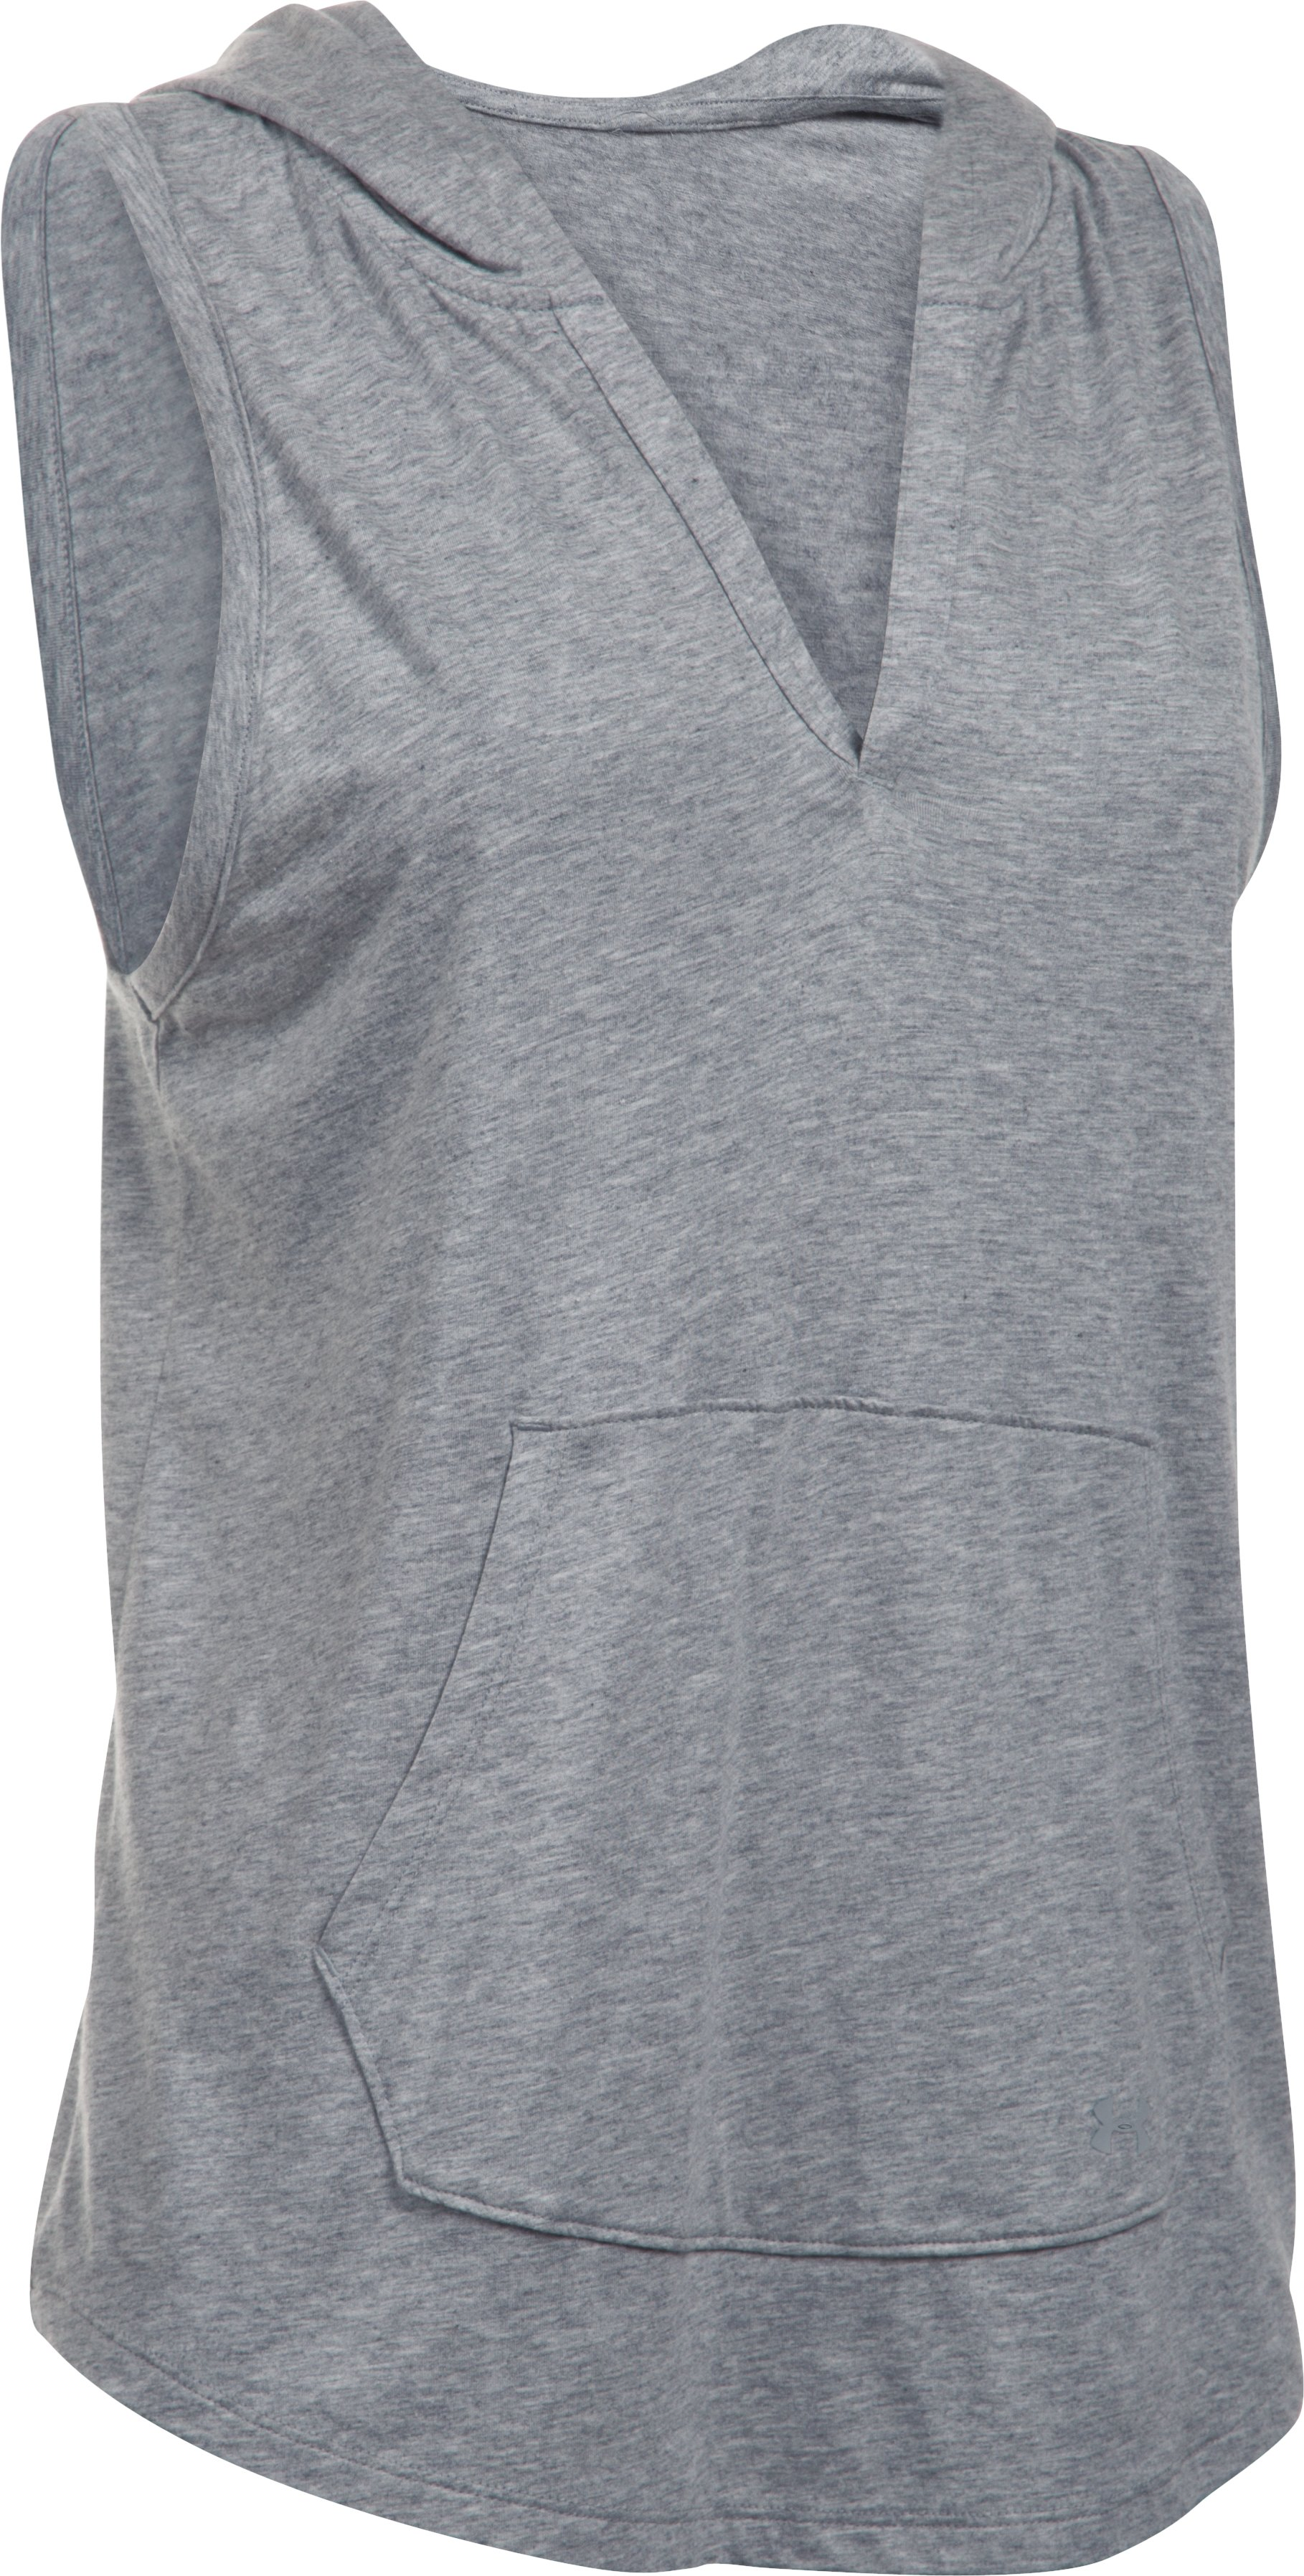 Women's UA Cotton Modal Sleeveless Hoodie, True Gray Heather, undefined